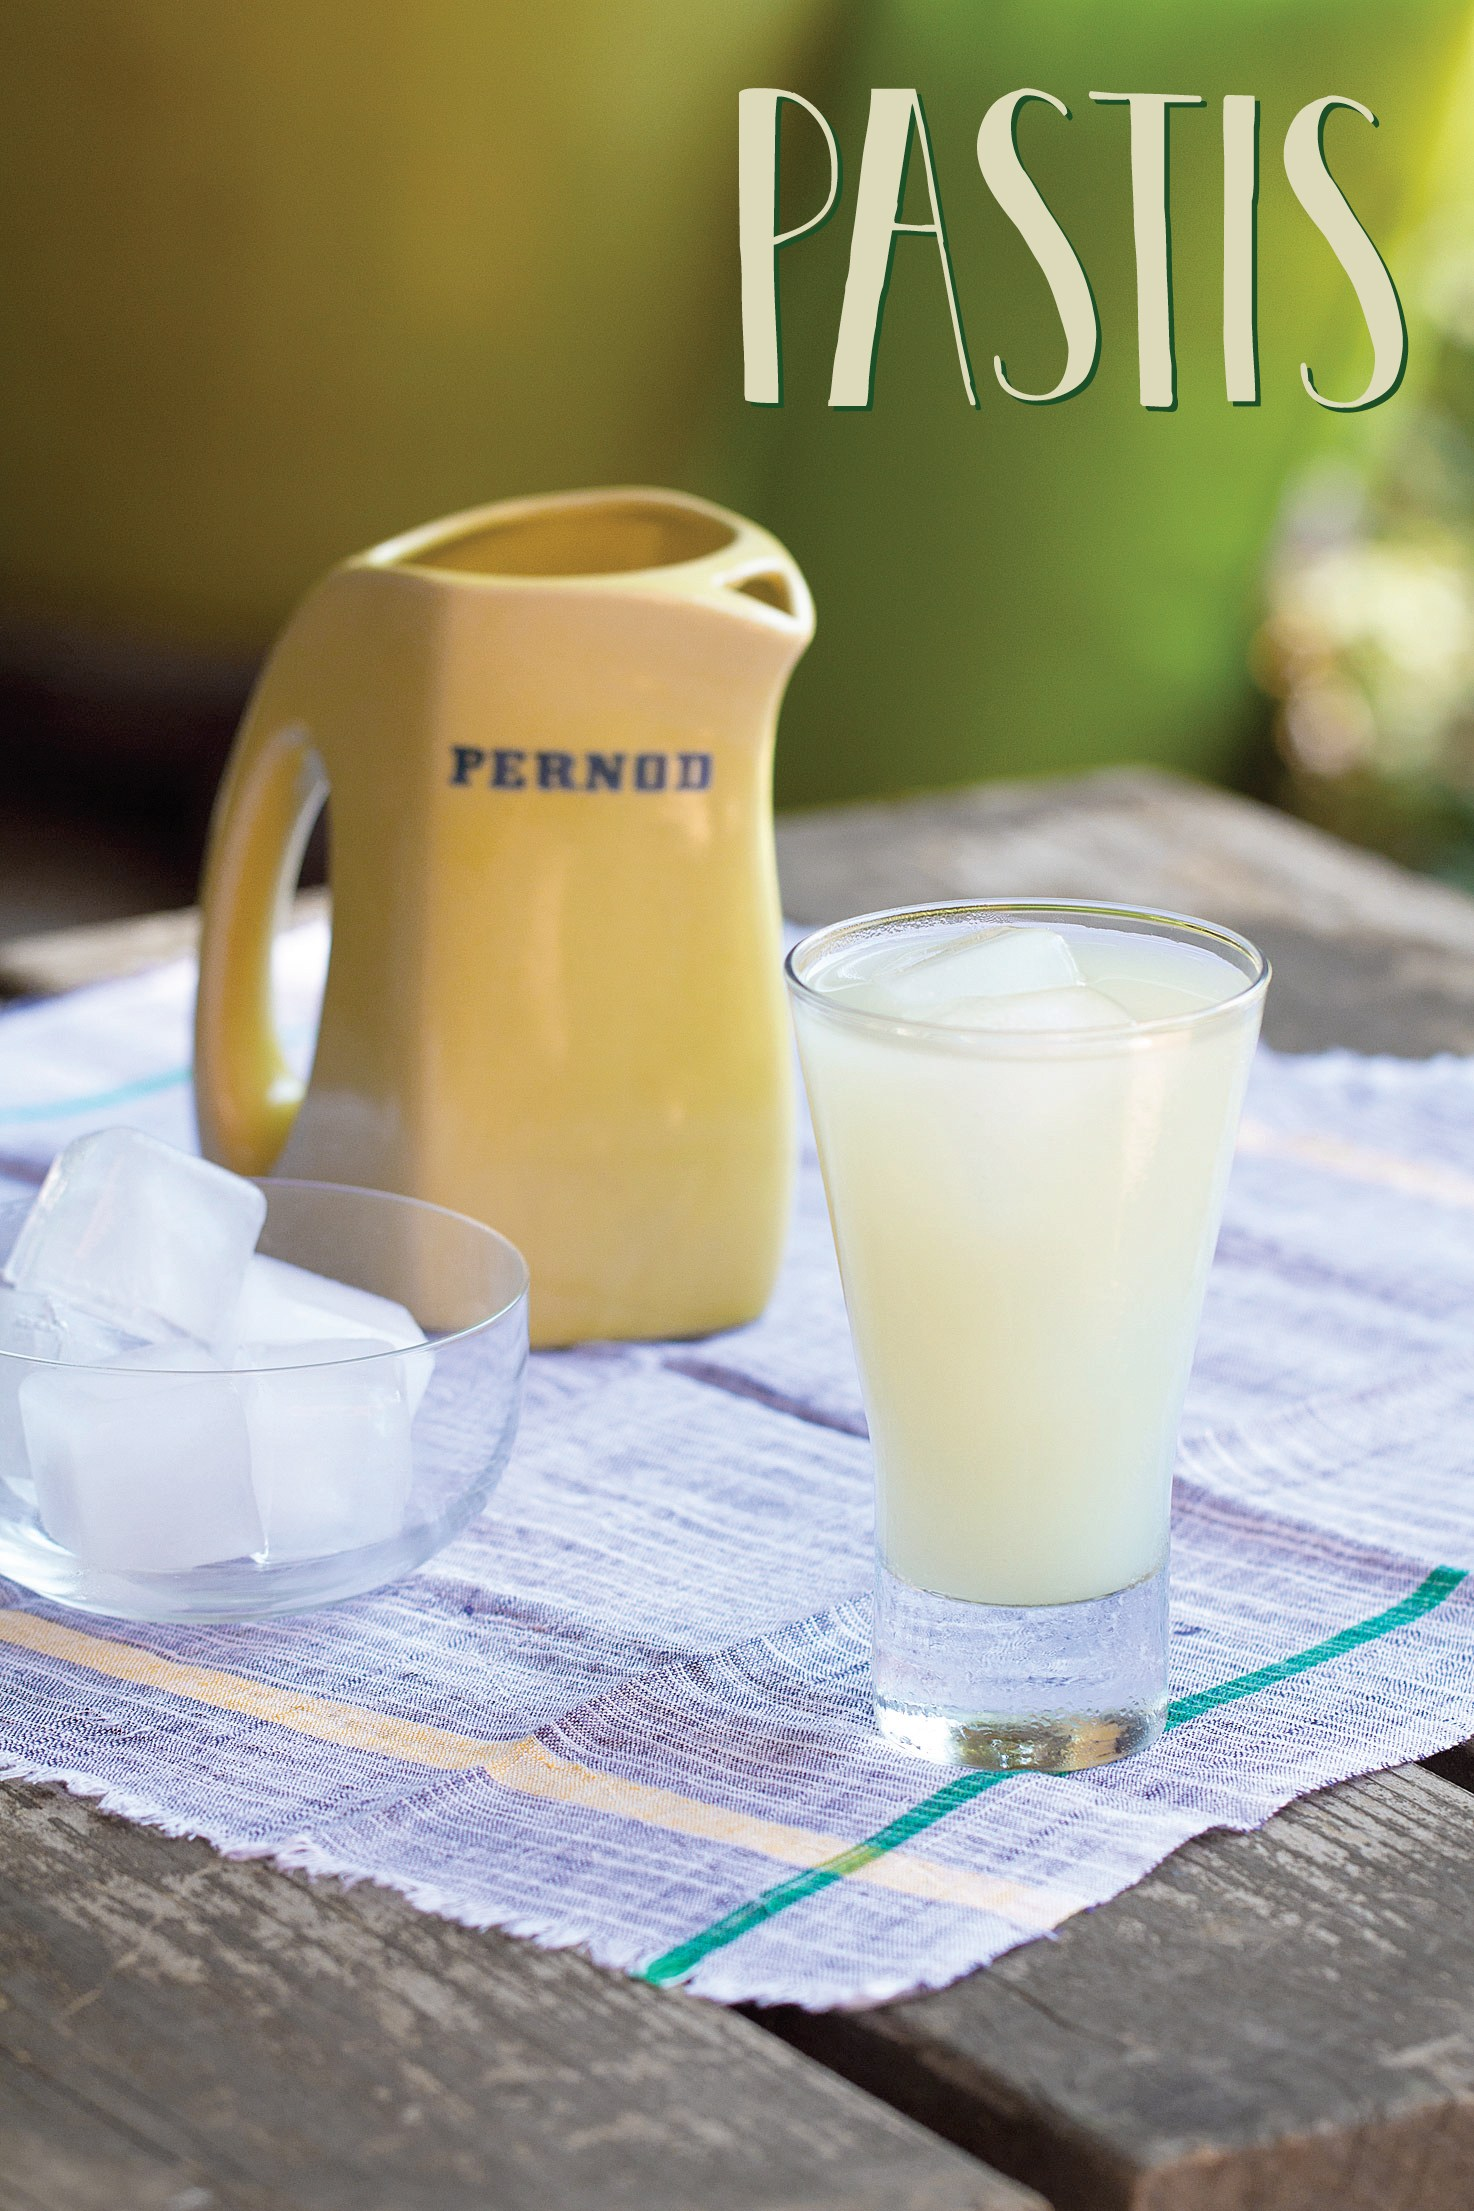 Pastis-French-Drink.jpg